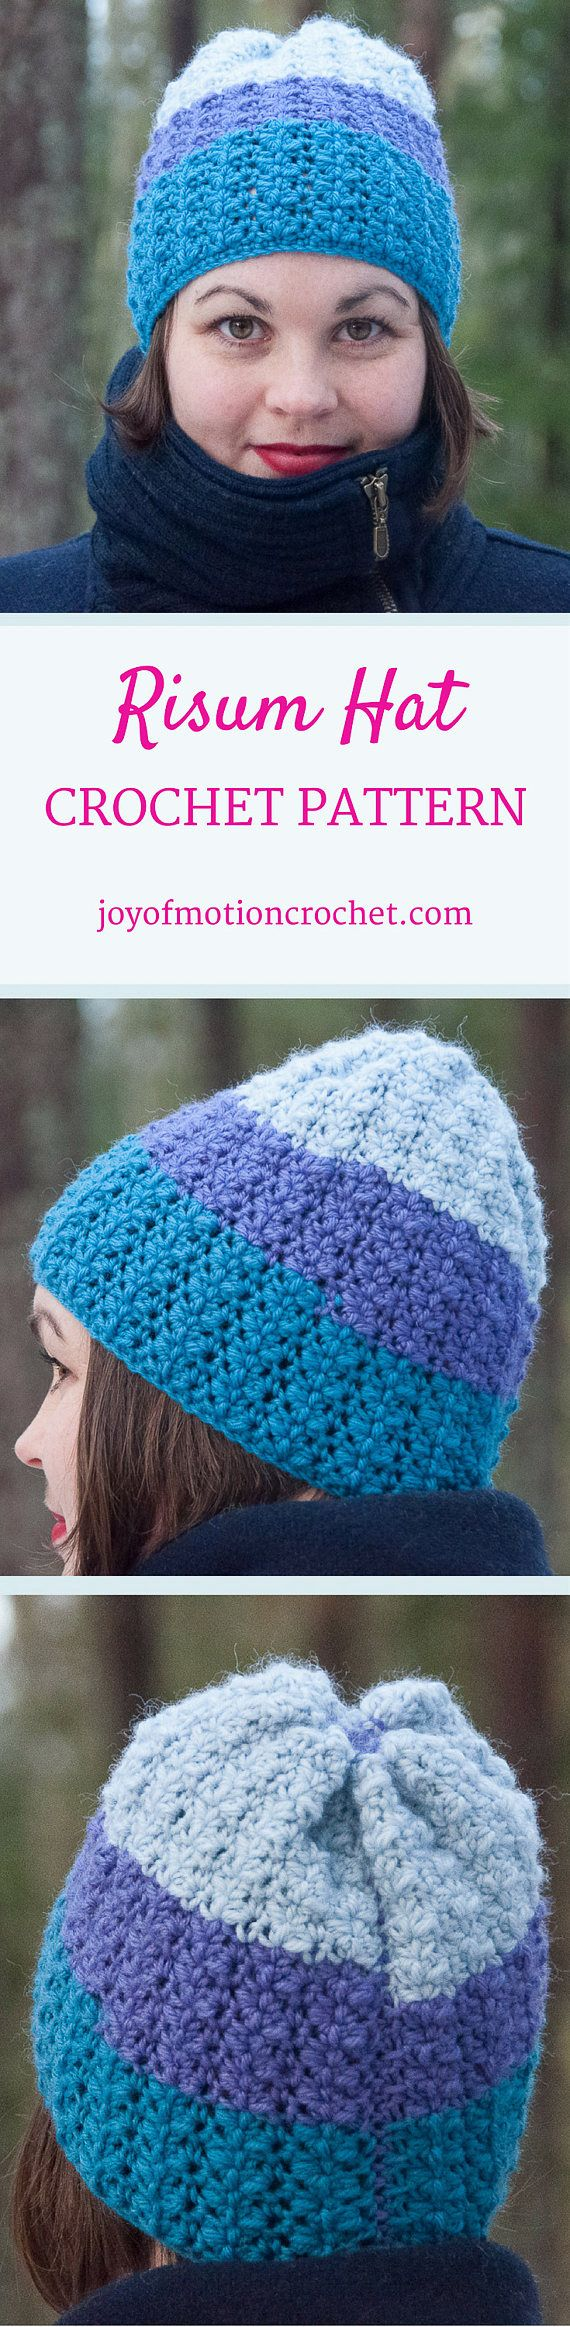 Risum Hat Crochet Pattern ★ Crochet pattern for the Risum Hat, a striped thick hat/beanie. ★ Easy to modify if you want to change the size. ★ Size: 12-18 months, 18-24 months, 2-5 years, Child, Teen, Adult Woman, Adult Man ★ Skill level: EASY ★ Language: English / US crochet terms. The Risum hat crochet pattern is a pattern for a warm winter hat. This beanie pattern has a huge size range from 12 months to adult size. Put this to use & keep yourself warm throughout fall & w...